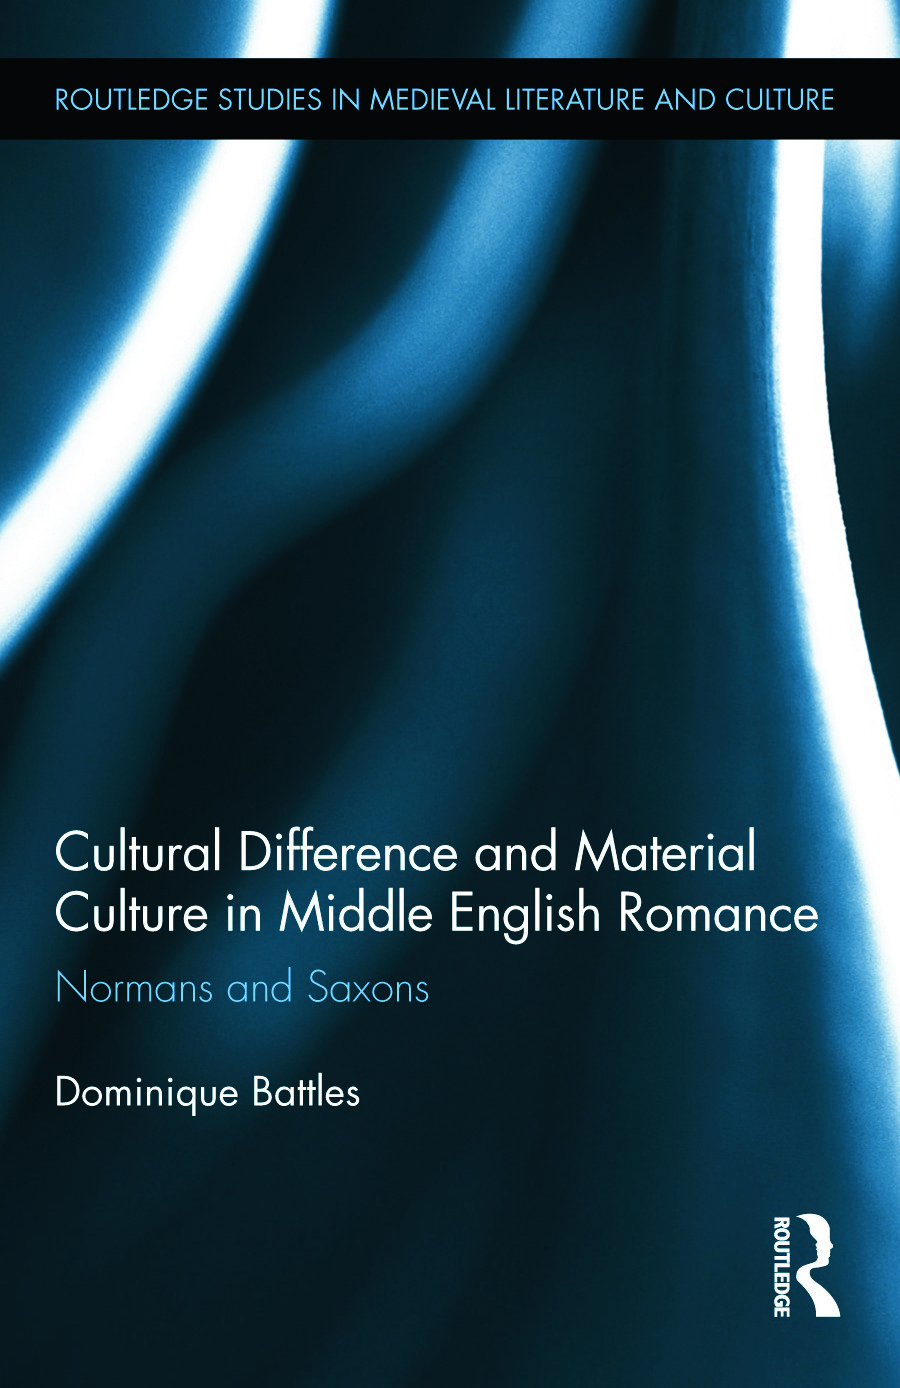 Cultural Difference and Material Culture in Middle English Romance: Normans and Saxons book cover